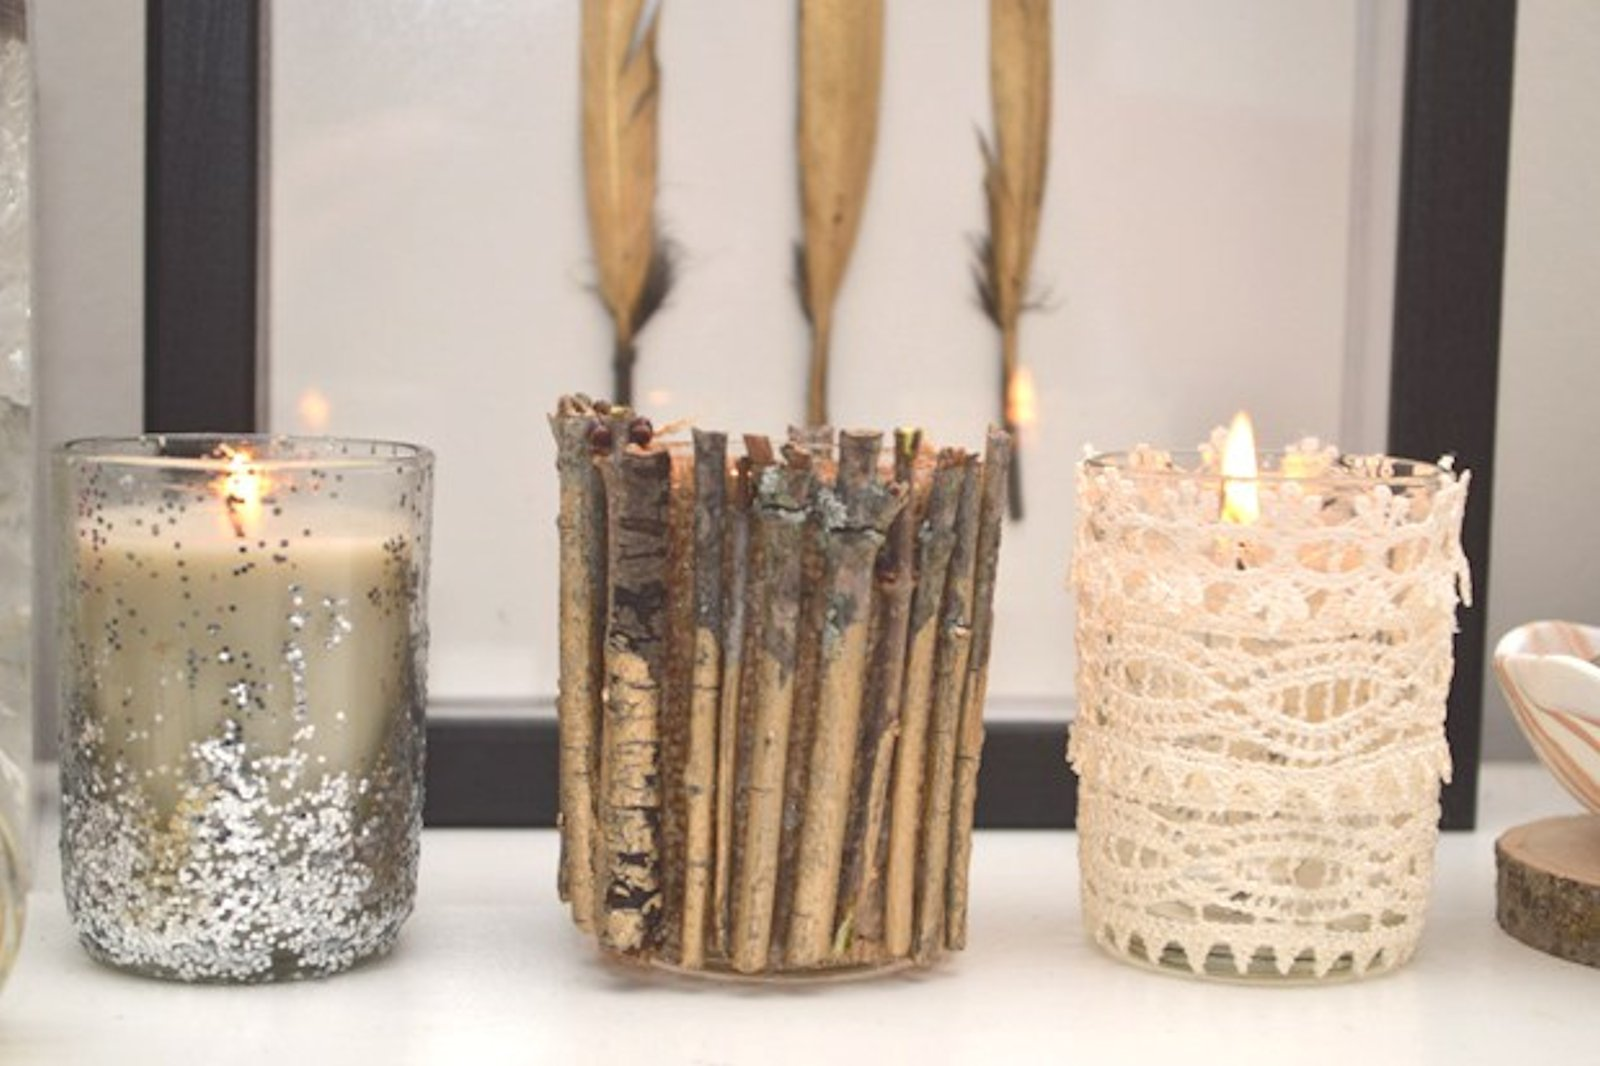 DIY: Embellished Candle Holders